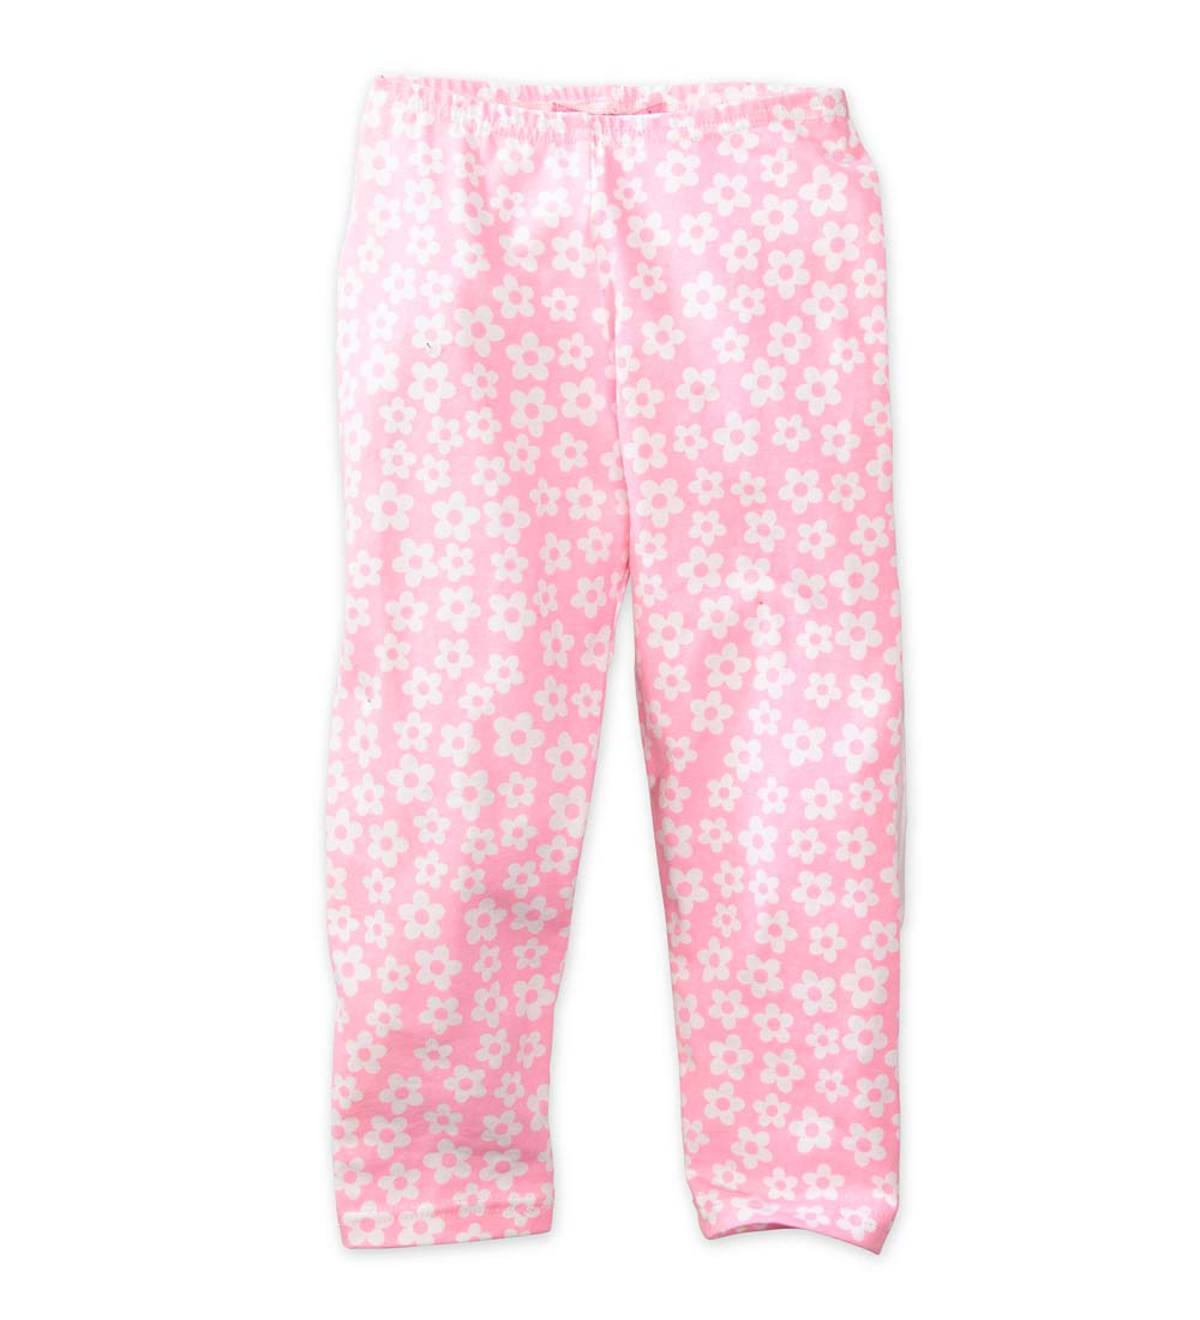 Flower Print Capri Leggings - Pink - 10